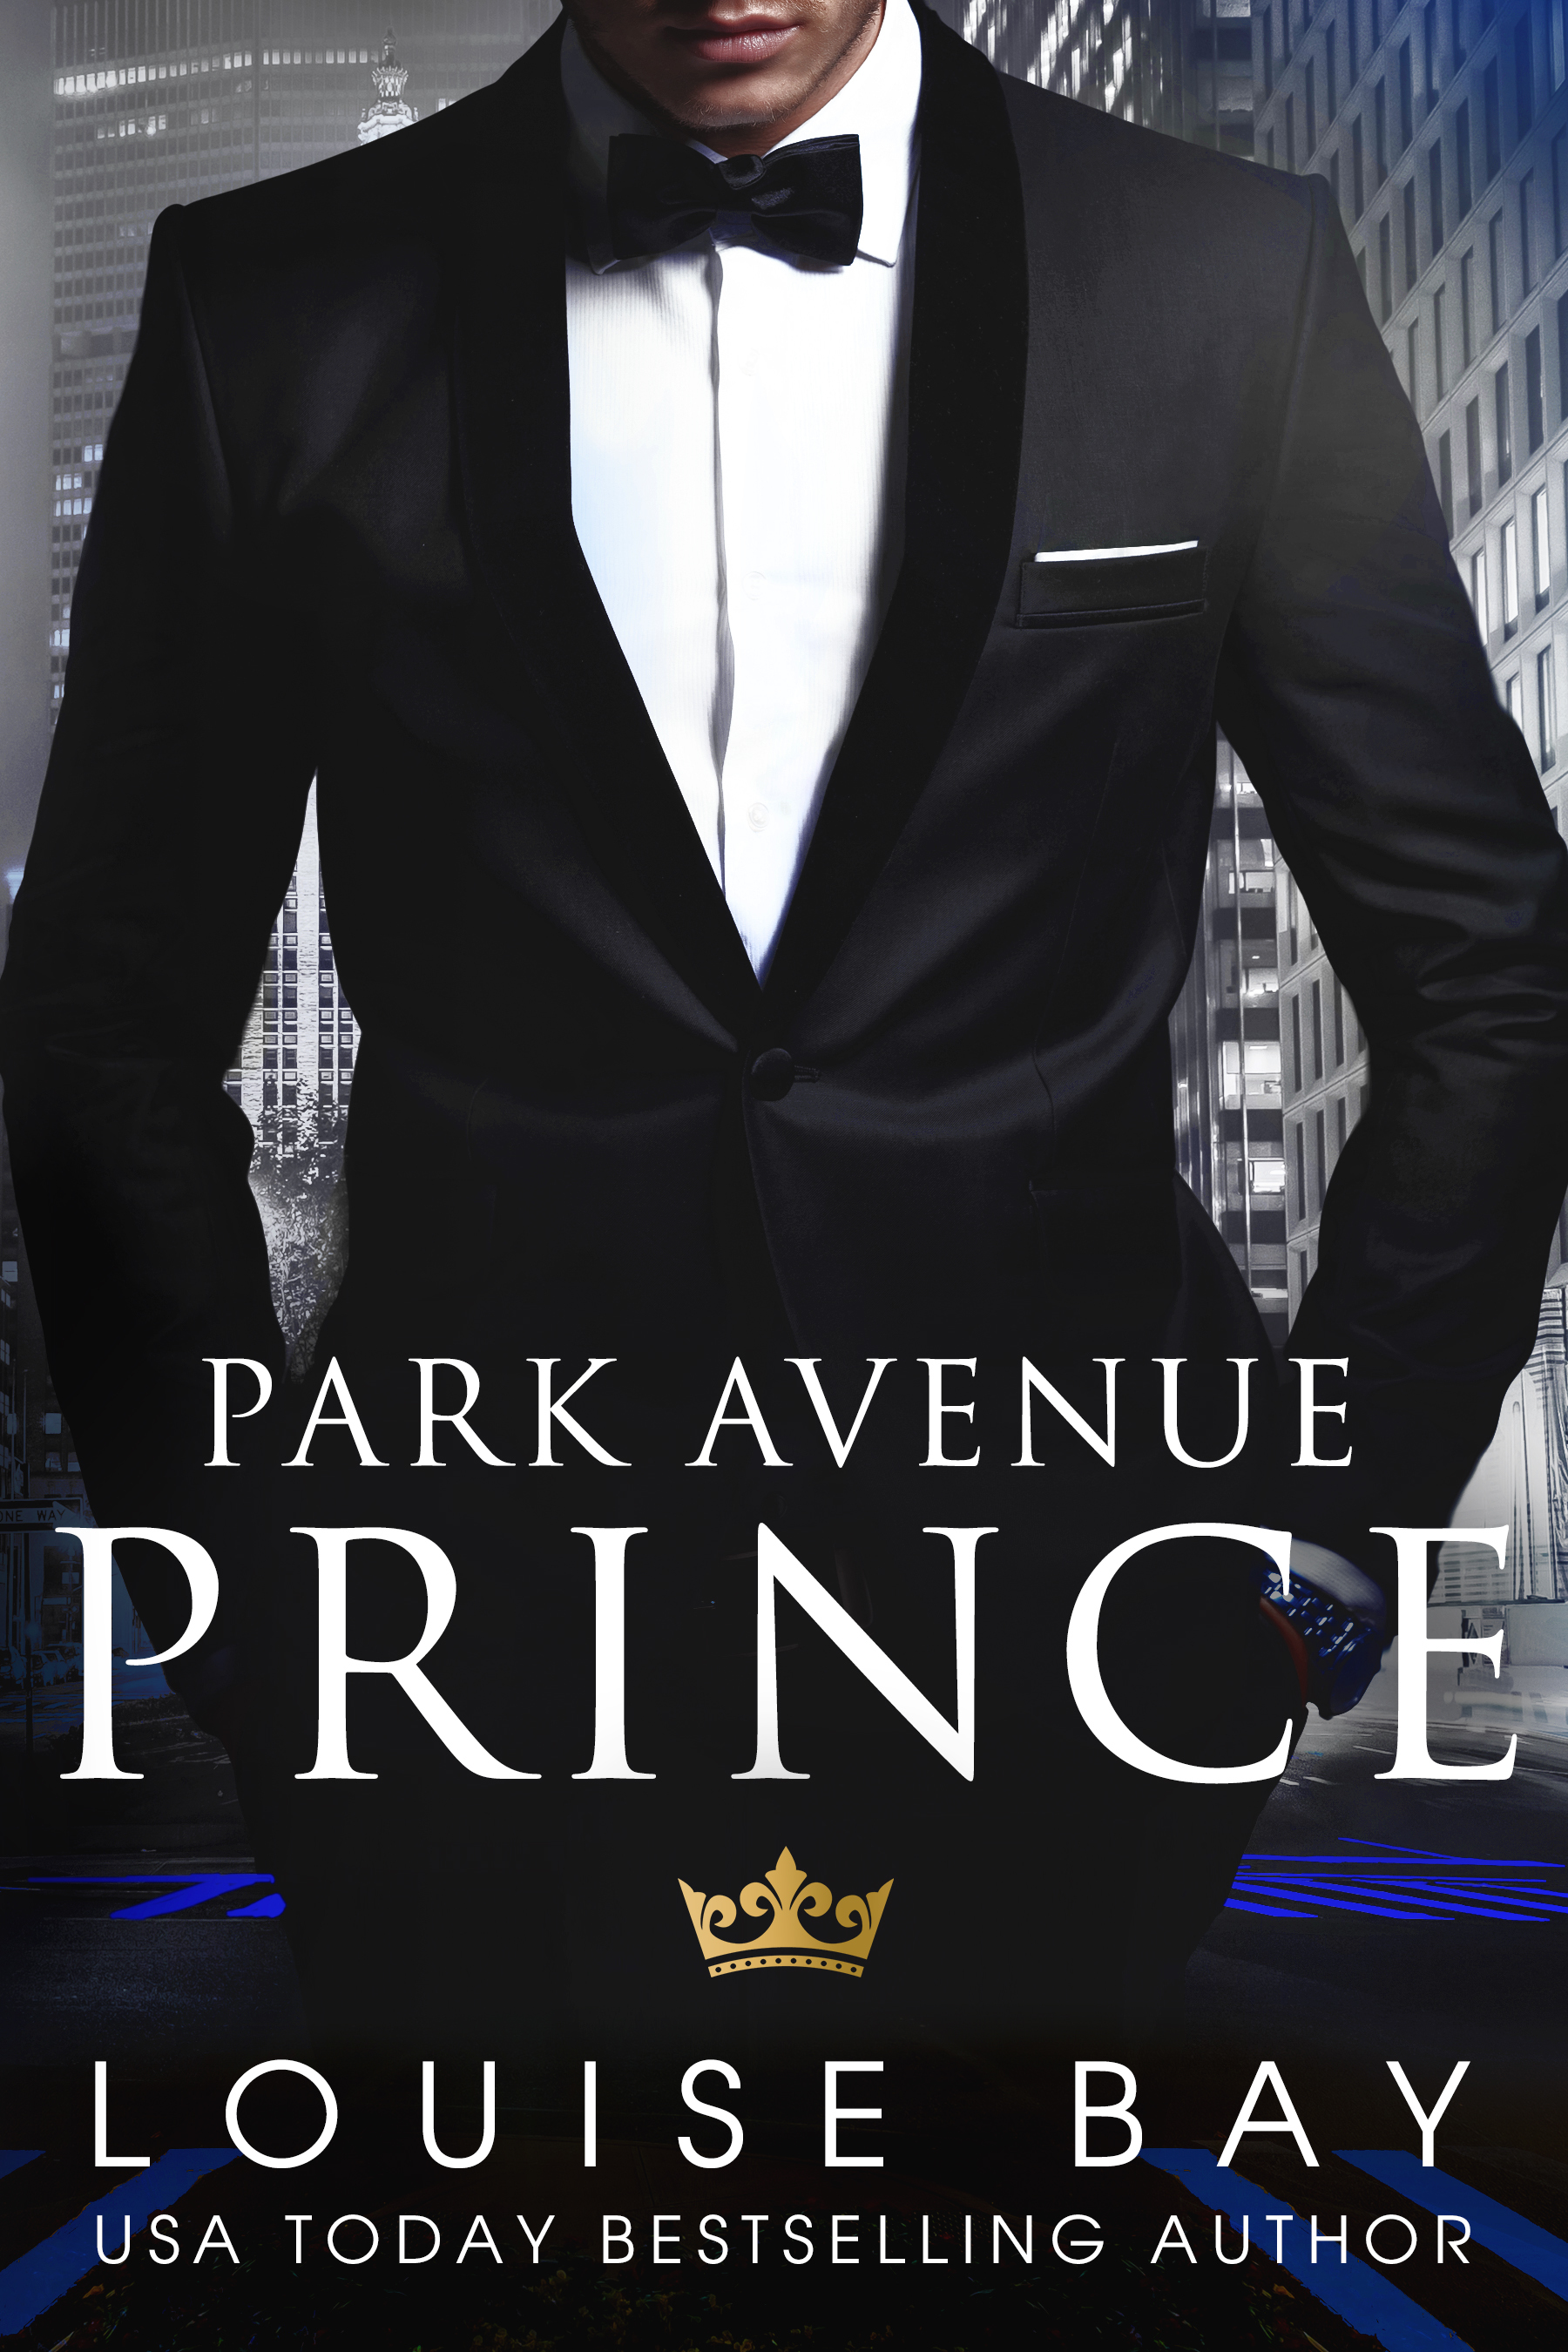 Louise Bay - The Royals 2 - Park Avenue Prince